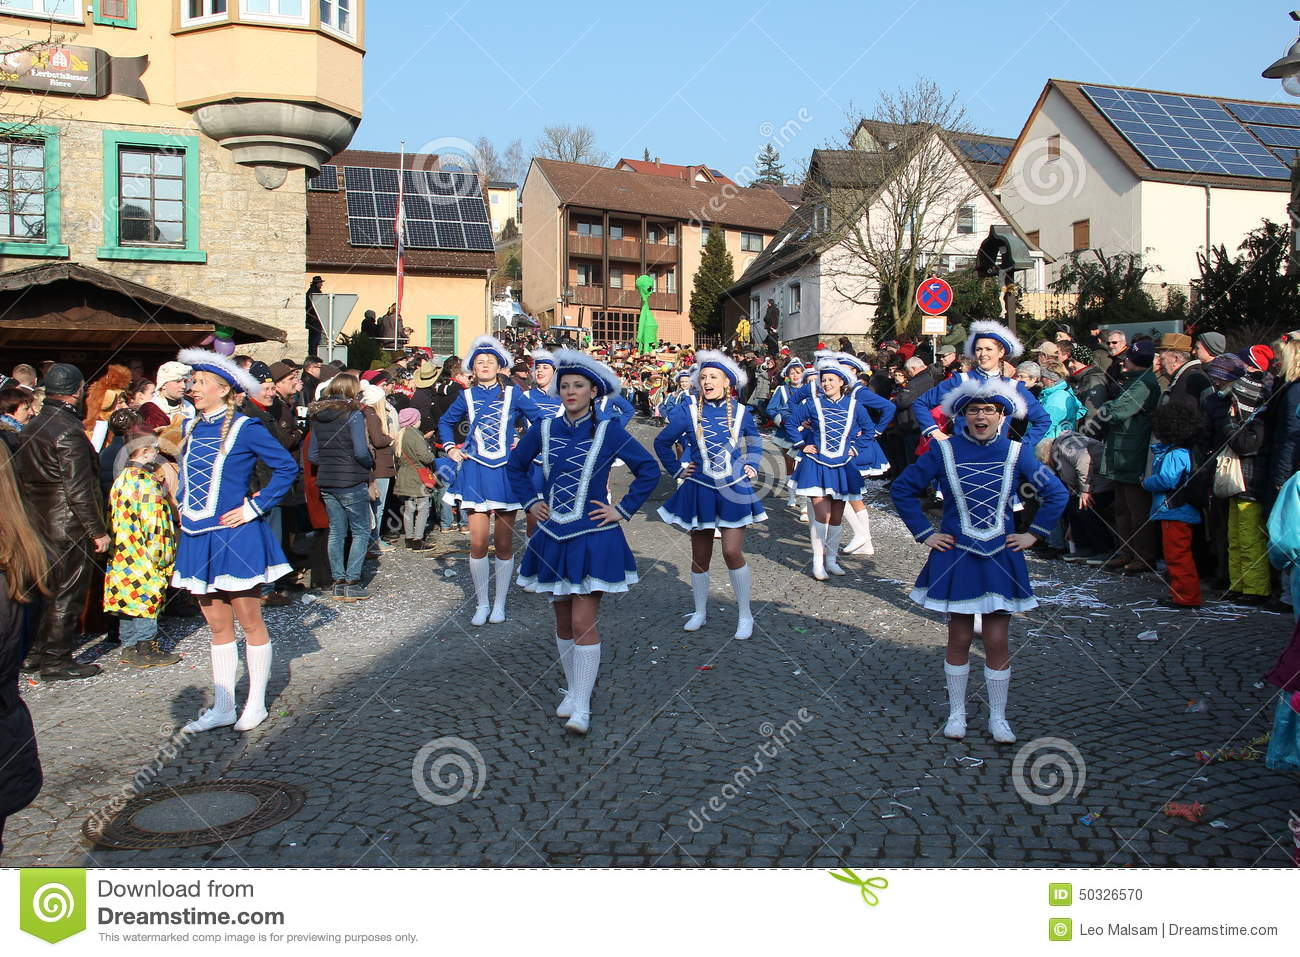 Fastnacht - an old tradition of winter wires in Germany